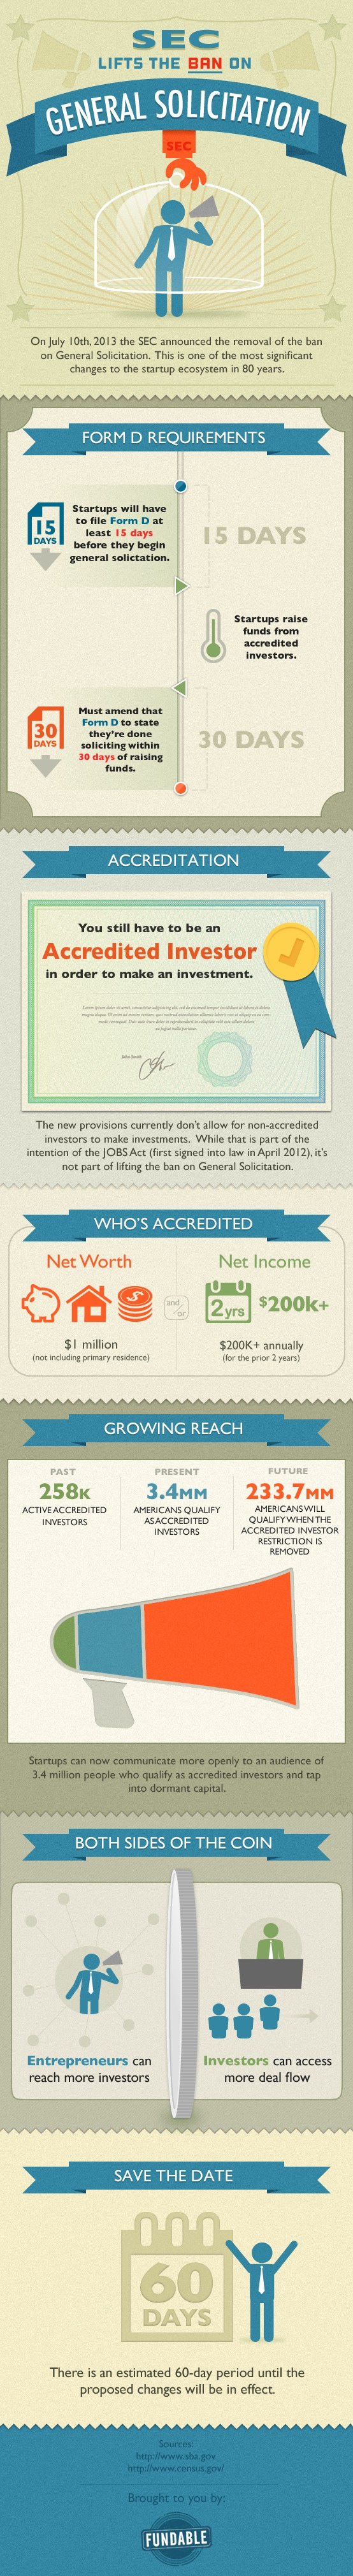 fundable-sec-lifts-general-solicitation-ban-infographic